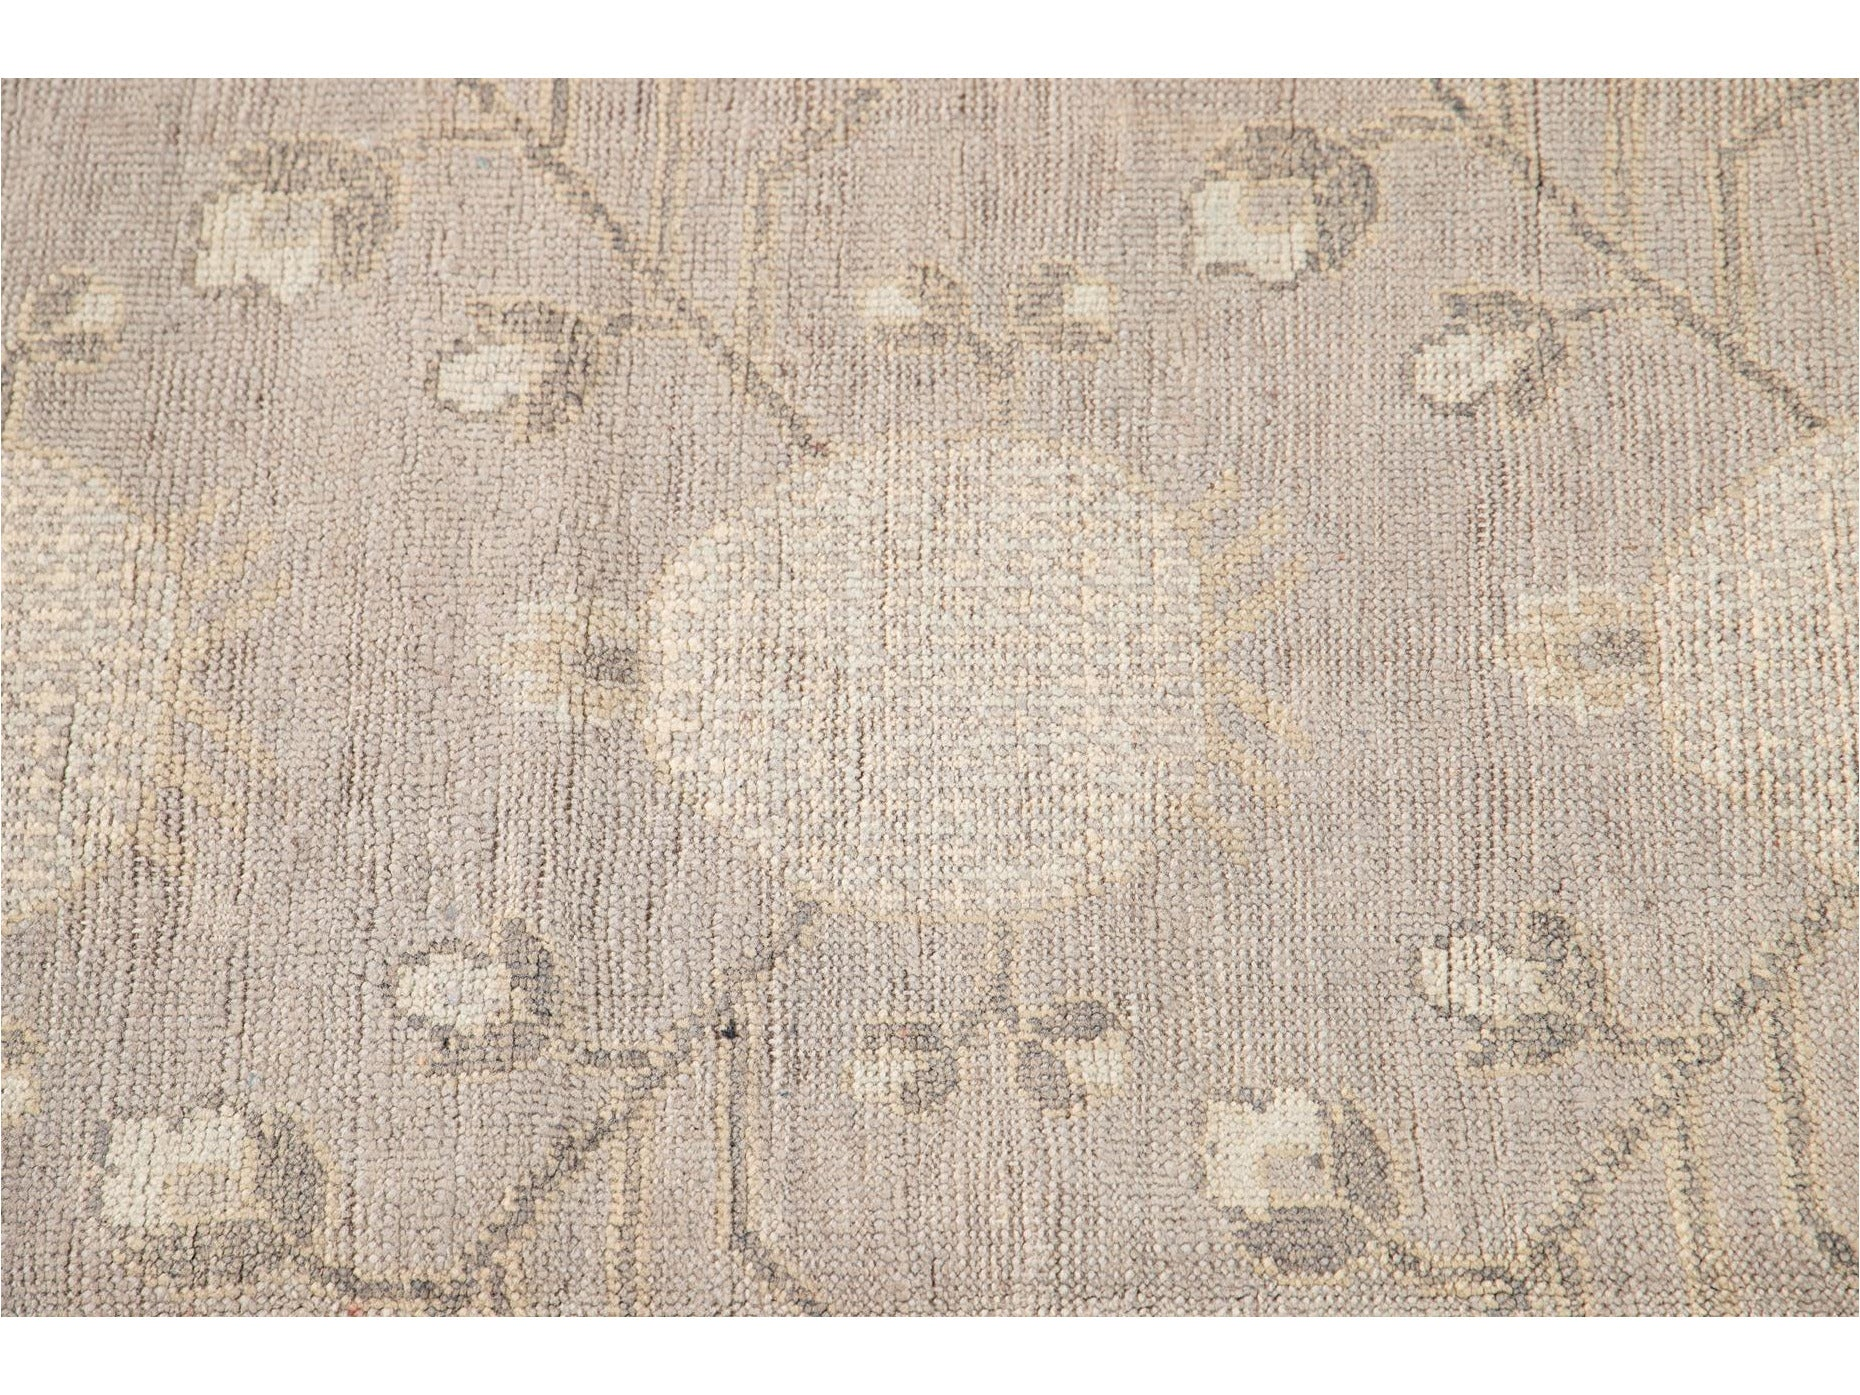 21st Century Modern Kothan-Style Oversize Wool Rug 13' x 16'